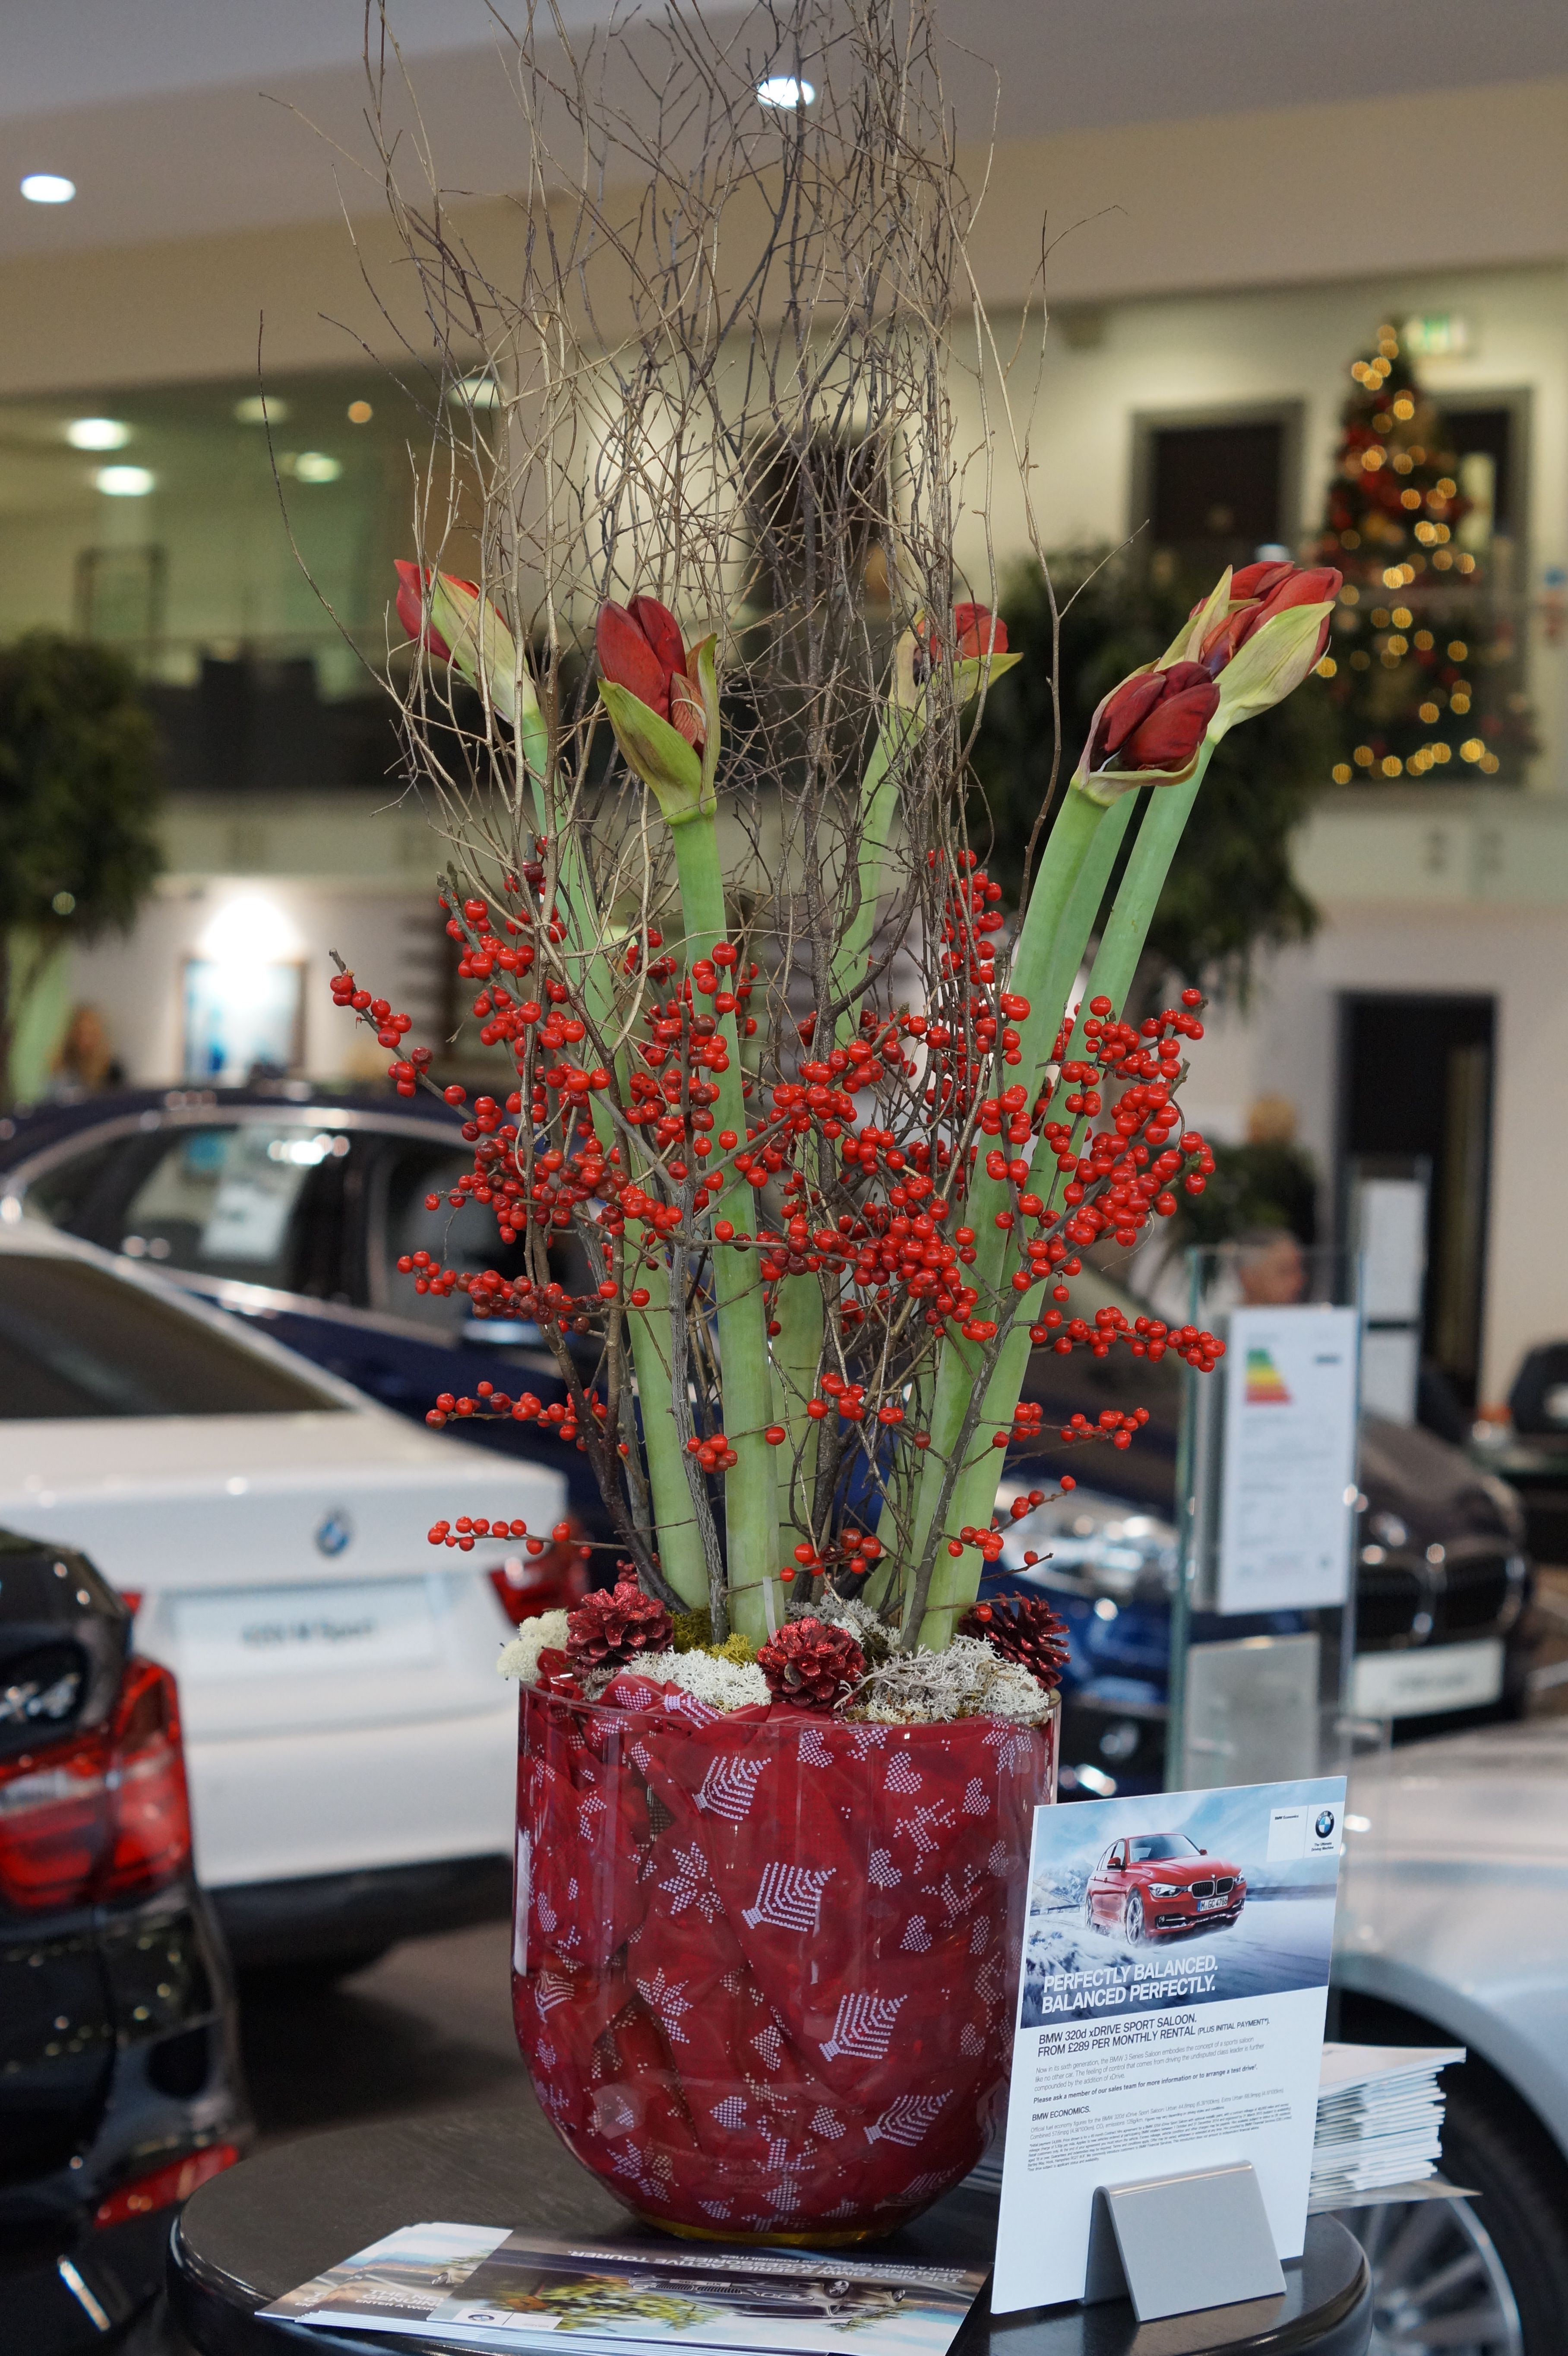 A Christmas arrangement using red amaryllis, ilex berries